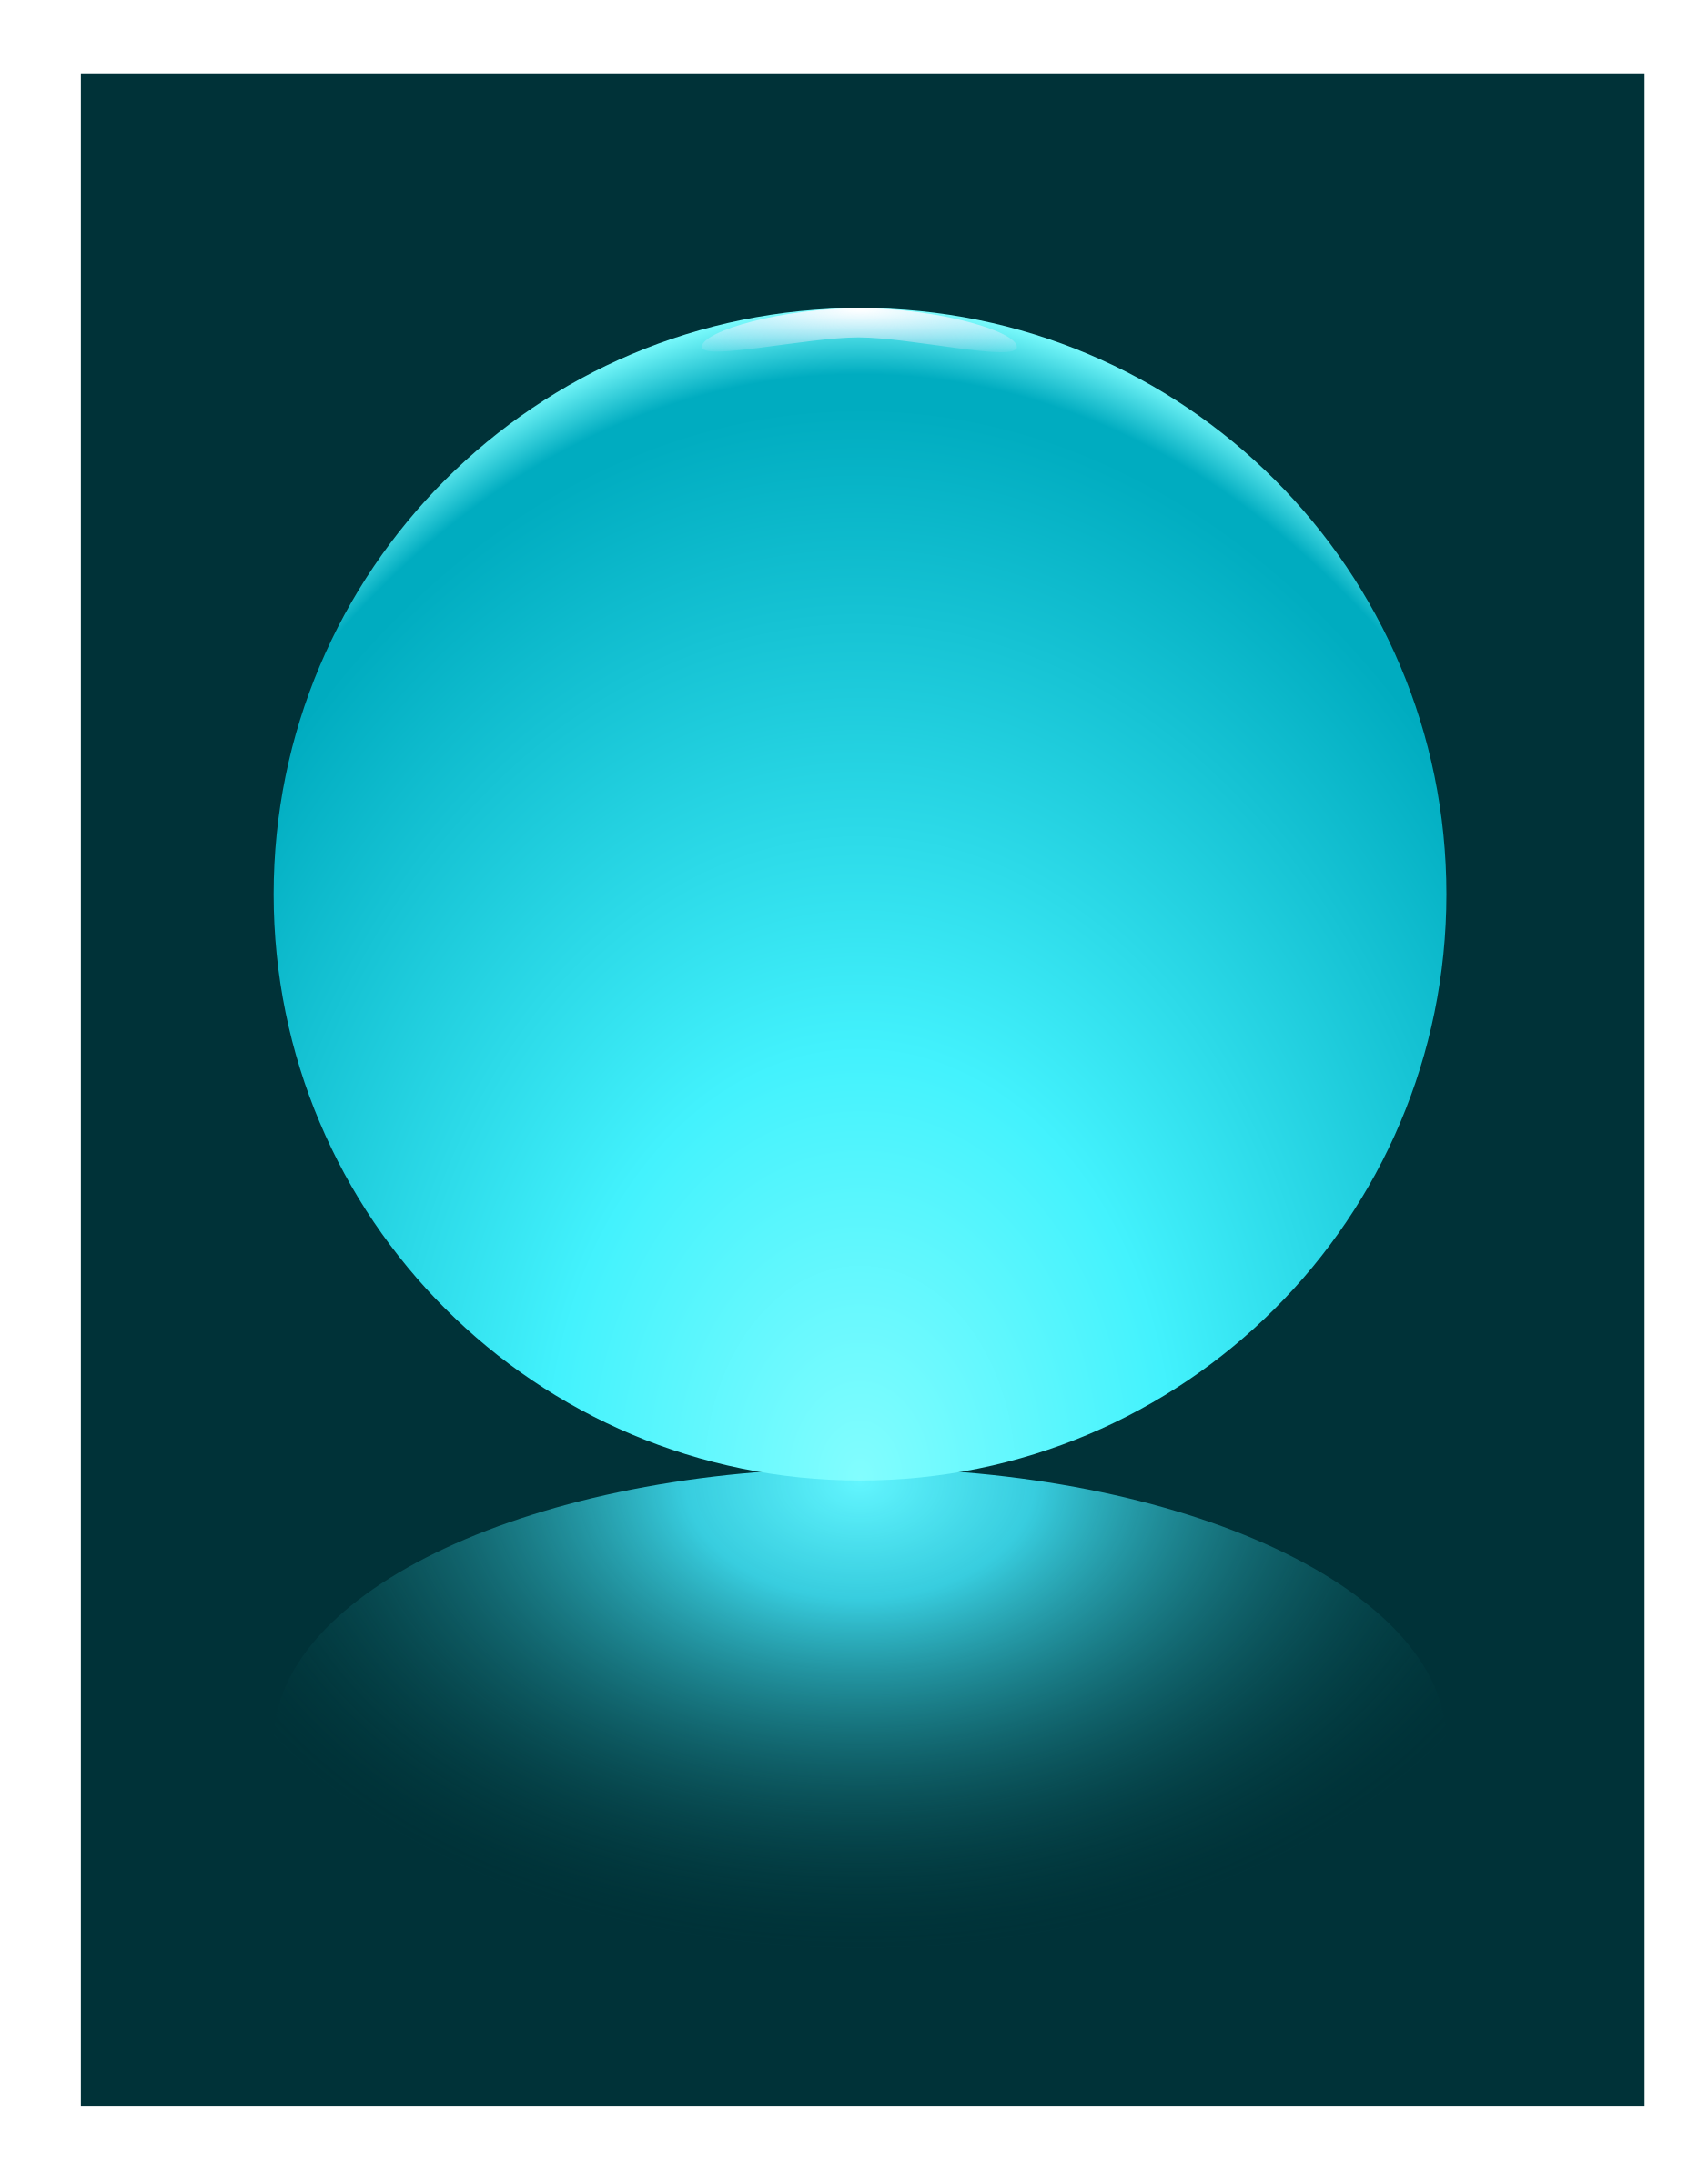 Cyan Sphere by djpaul